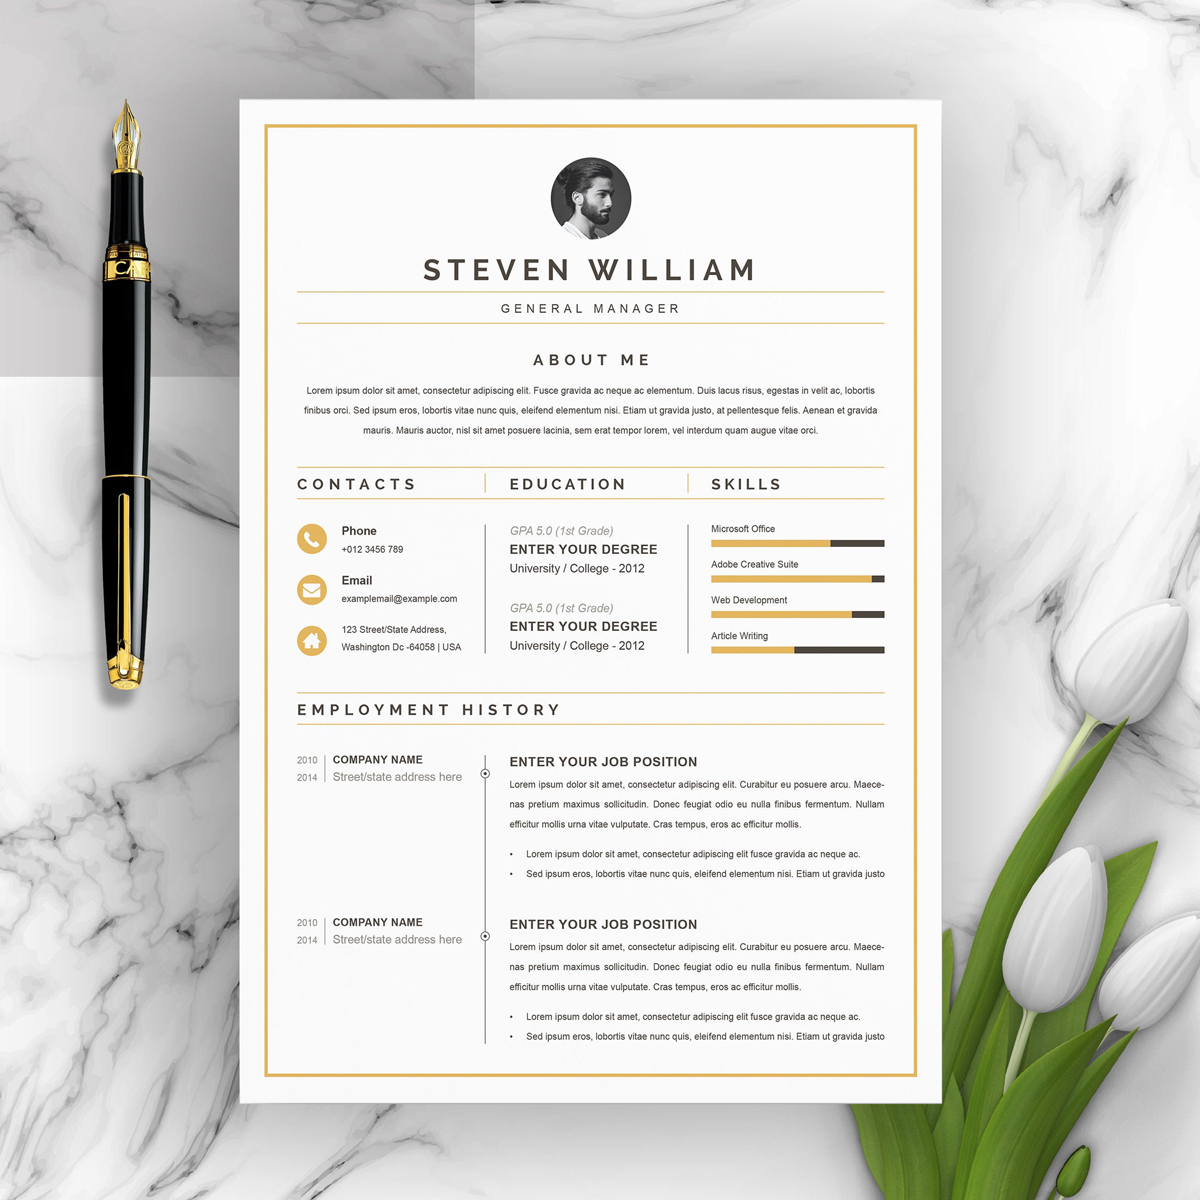 https://s3u.tmimgcdn.com/1860567-1580627614205_01_2-Pages-Free-Resume-Design-Template.jpg